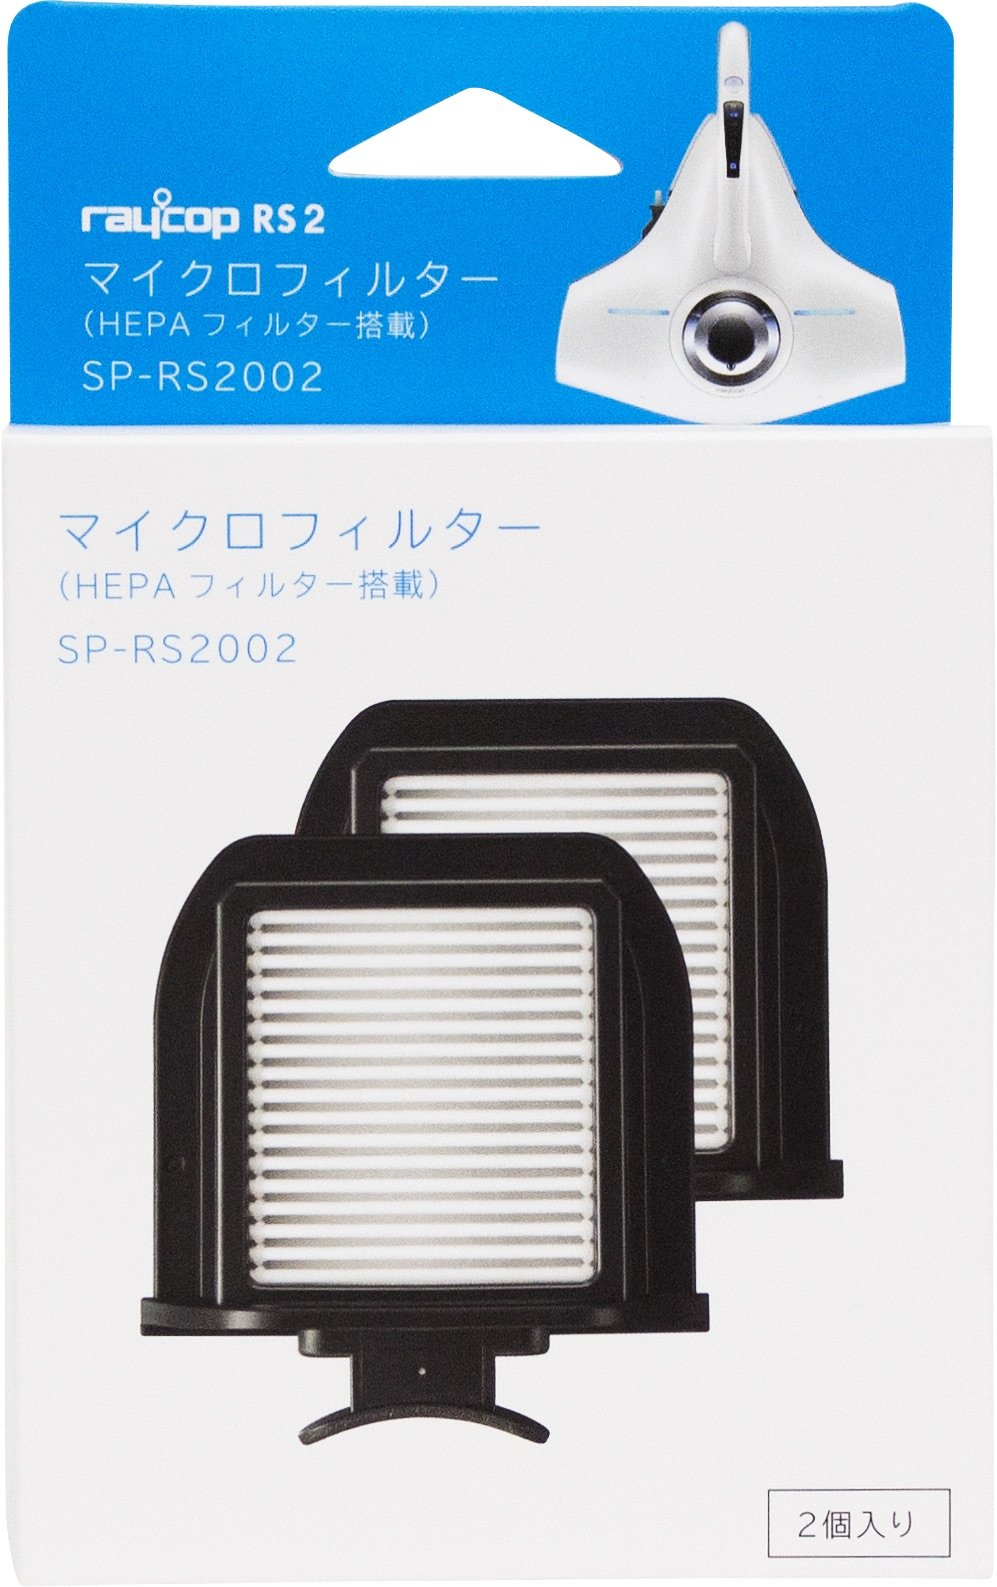 Raycop RS2 HEPA Filter Replacement 2 Pack - SP-RS2002